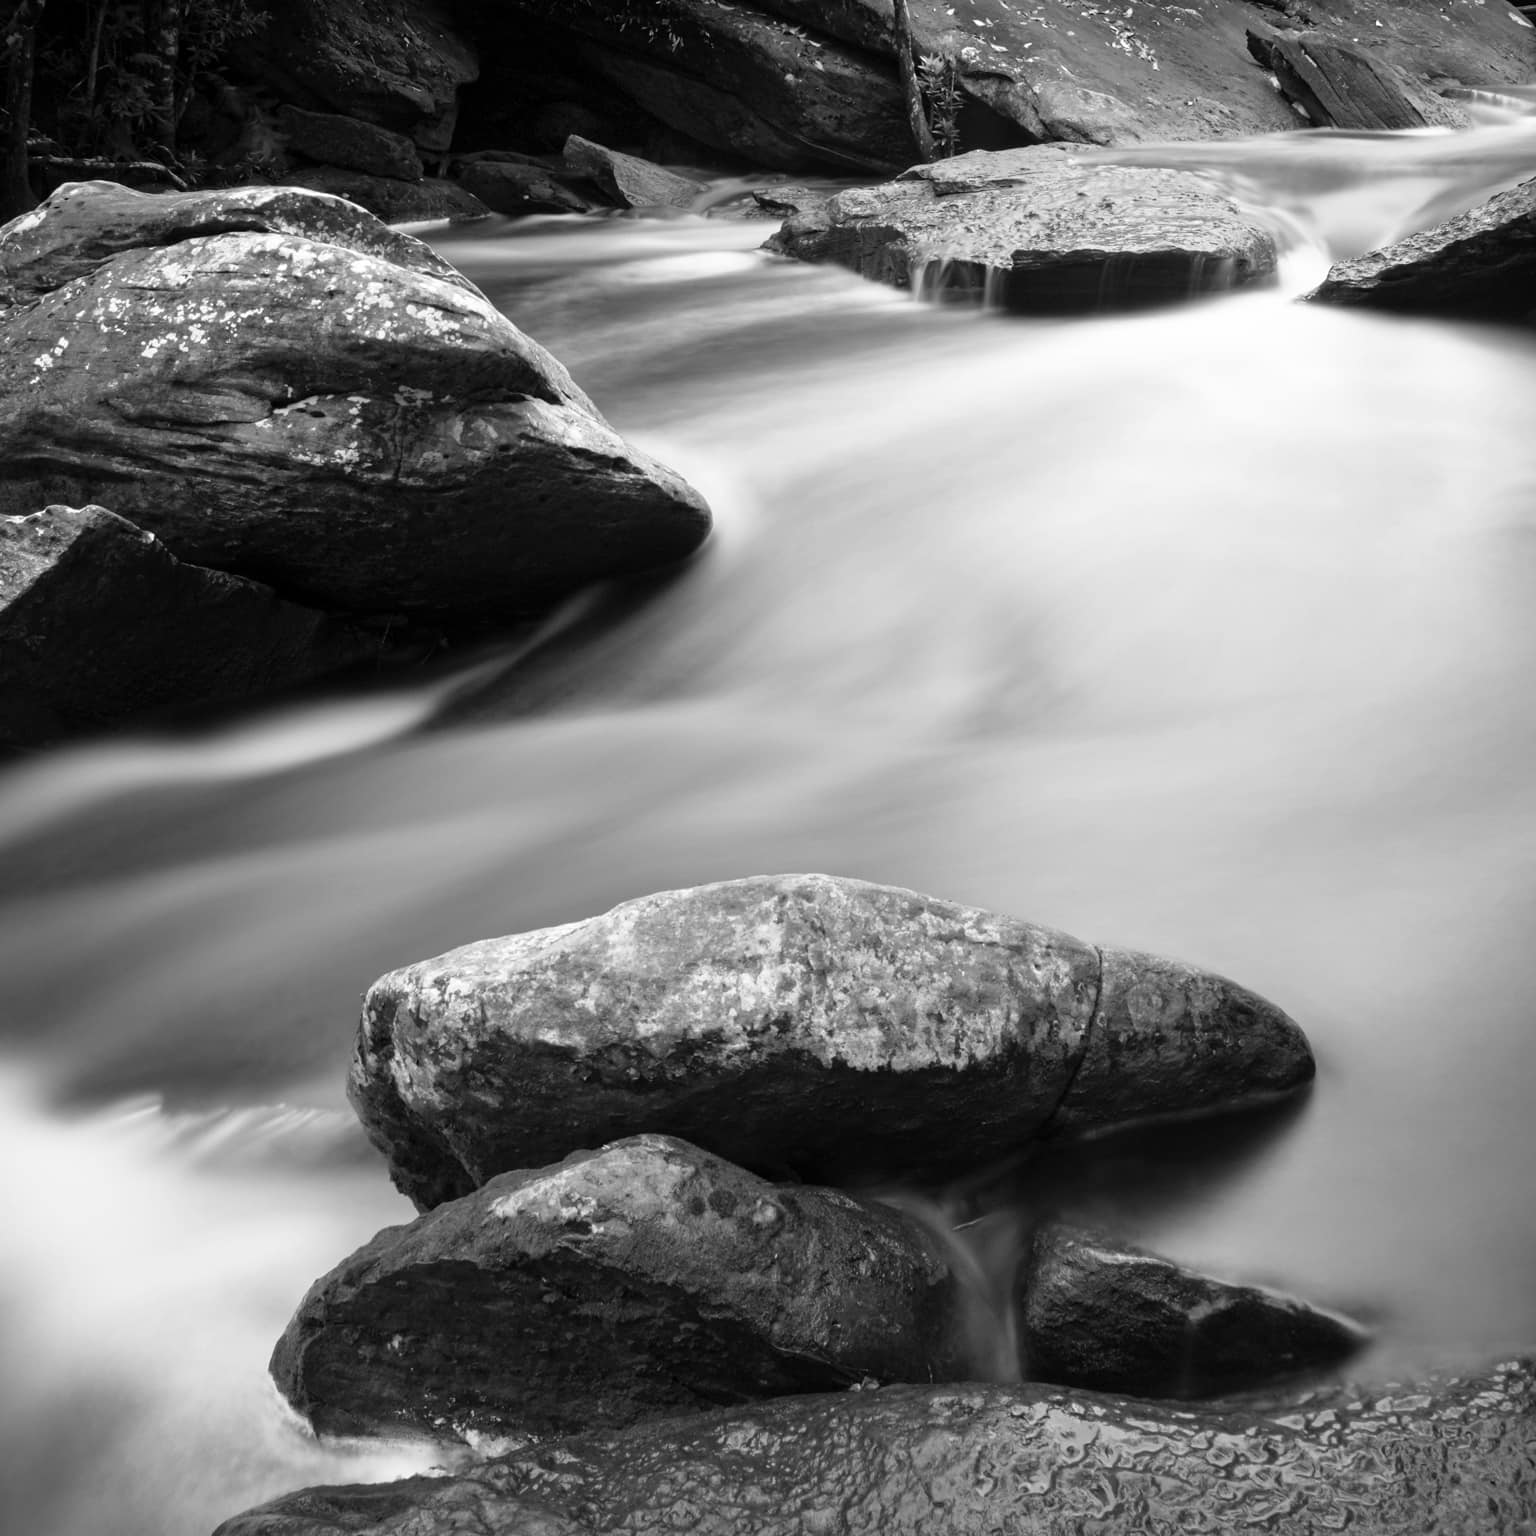 Black and white long exposure of Popokvil Waterfall closeup. Bokor National Park. Kampot, Cambodia. Water looks creamy.